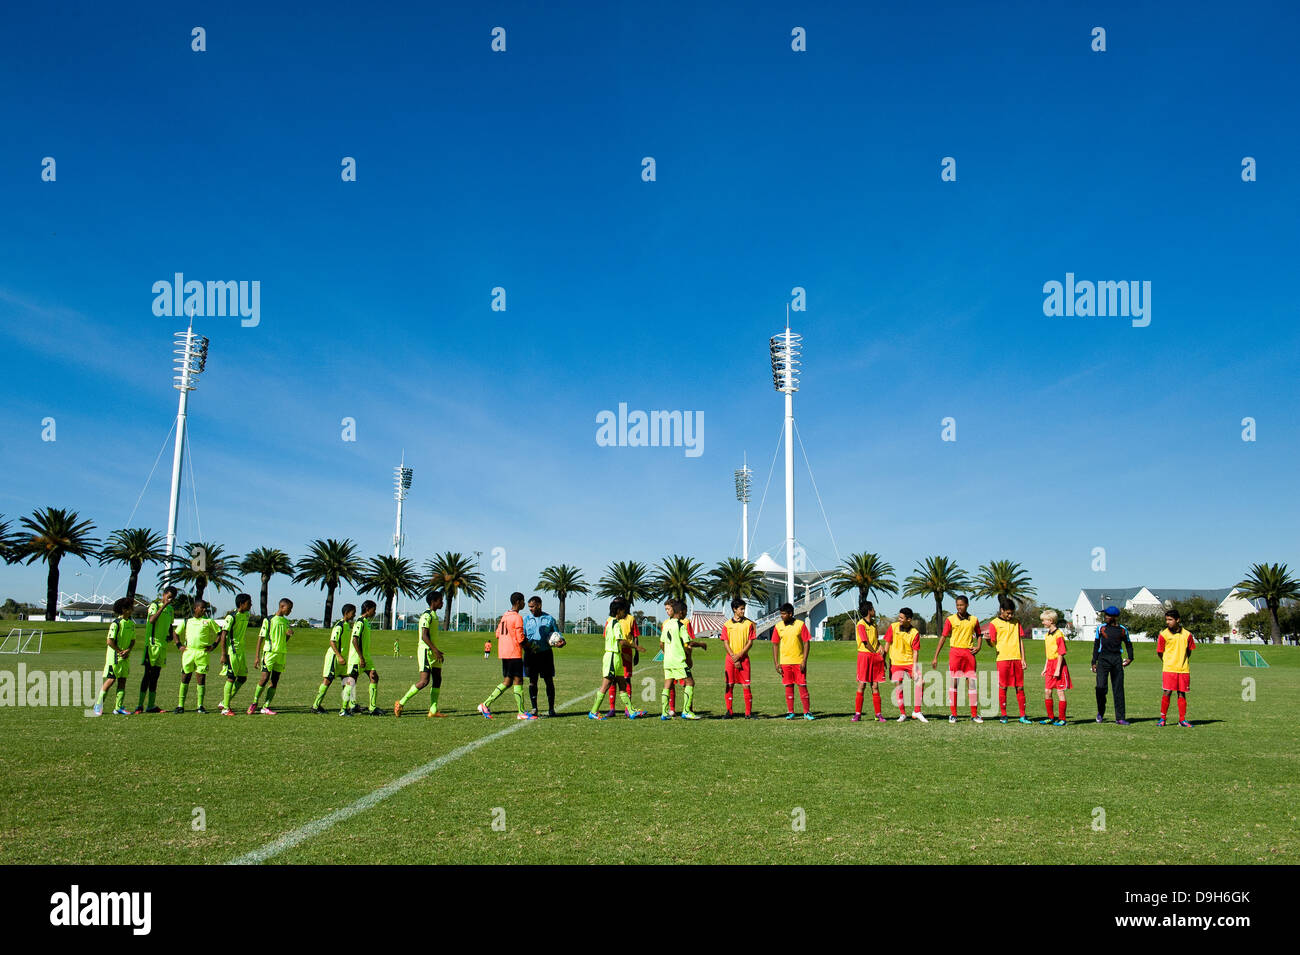 Youth U 15 football teams greeting another before playing a match, Cape Town, South Africa - Stock Image